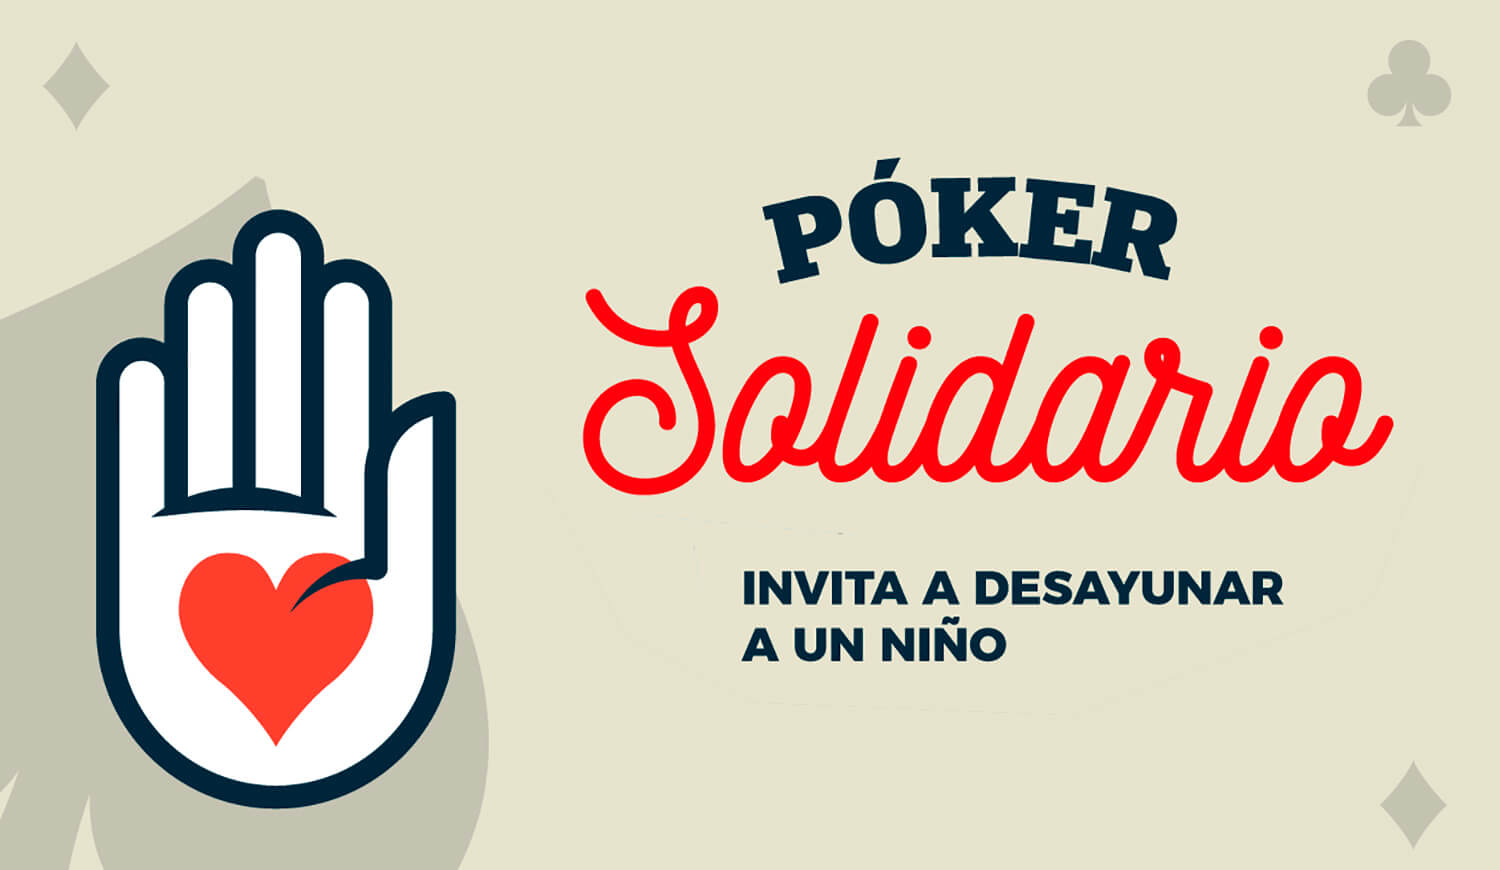 Poker solidario